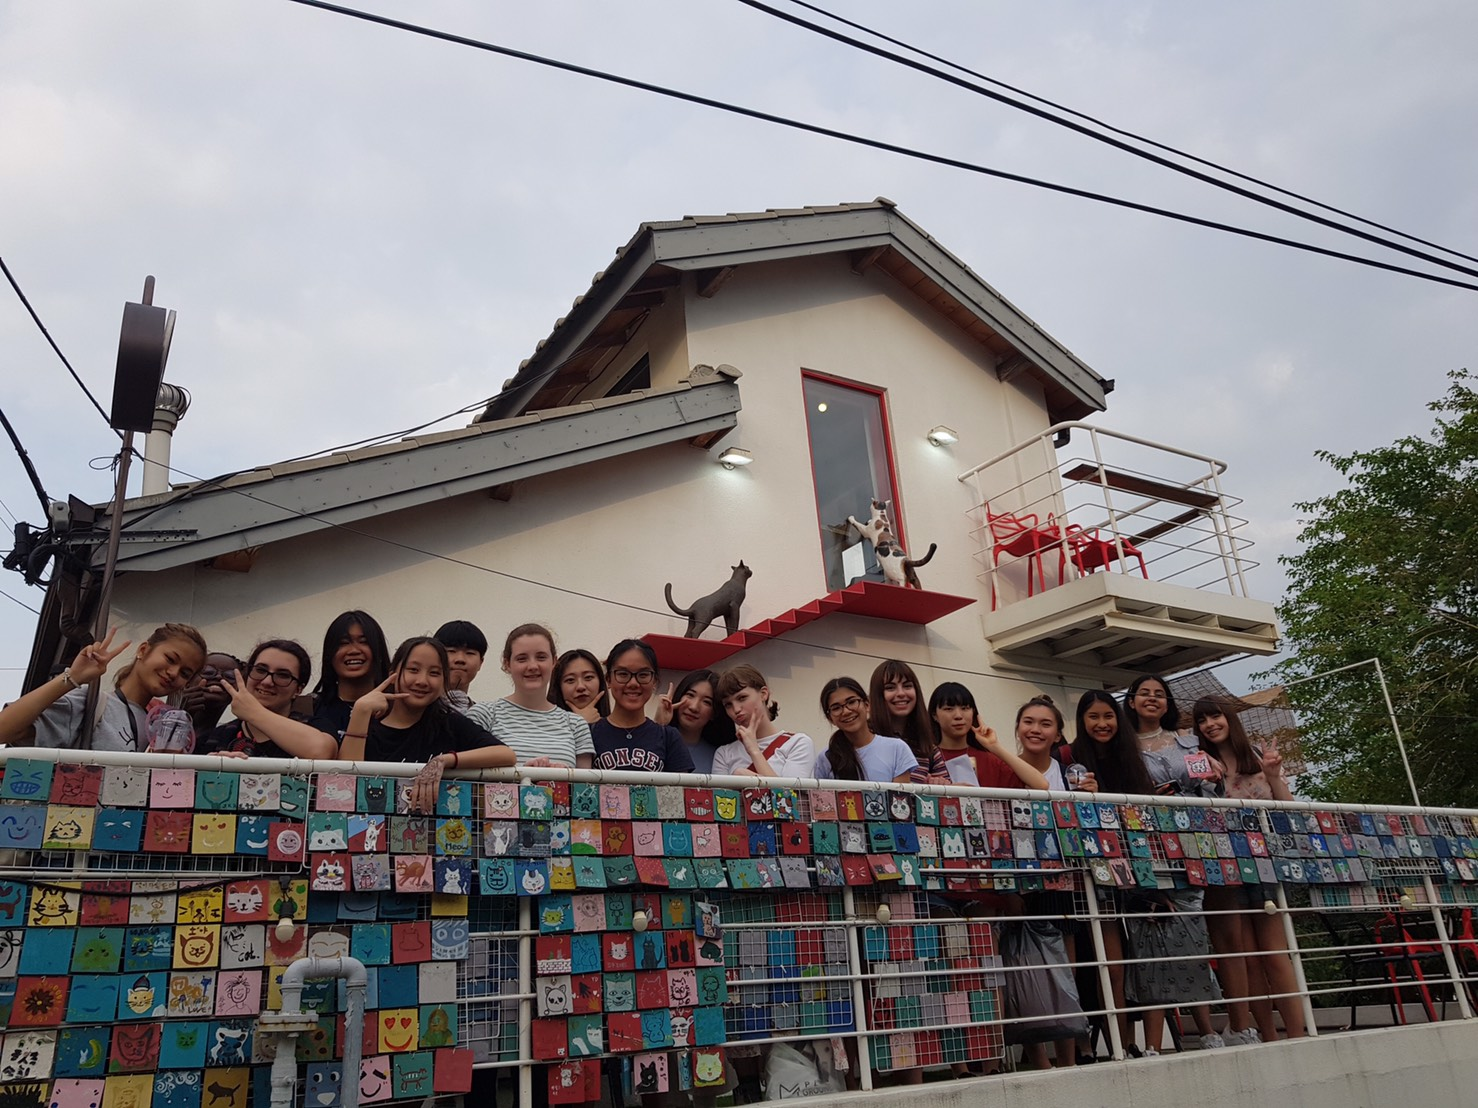 Group picture at a cafe atop Iwha Mural Village.